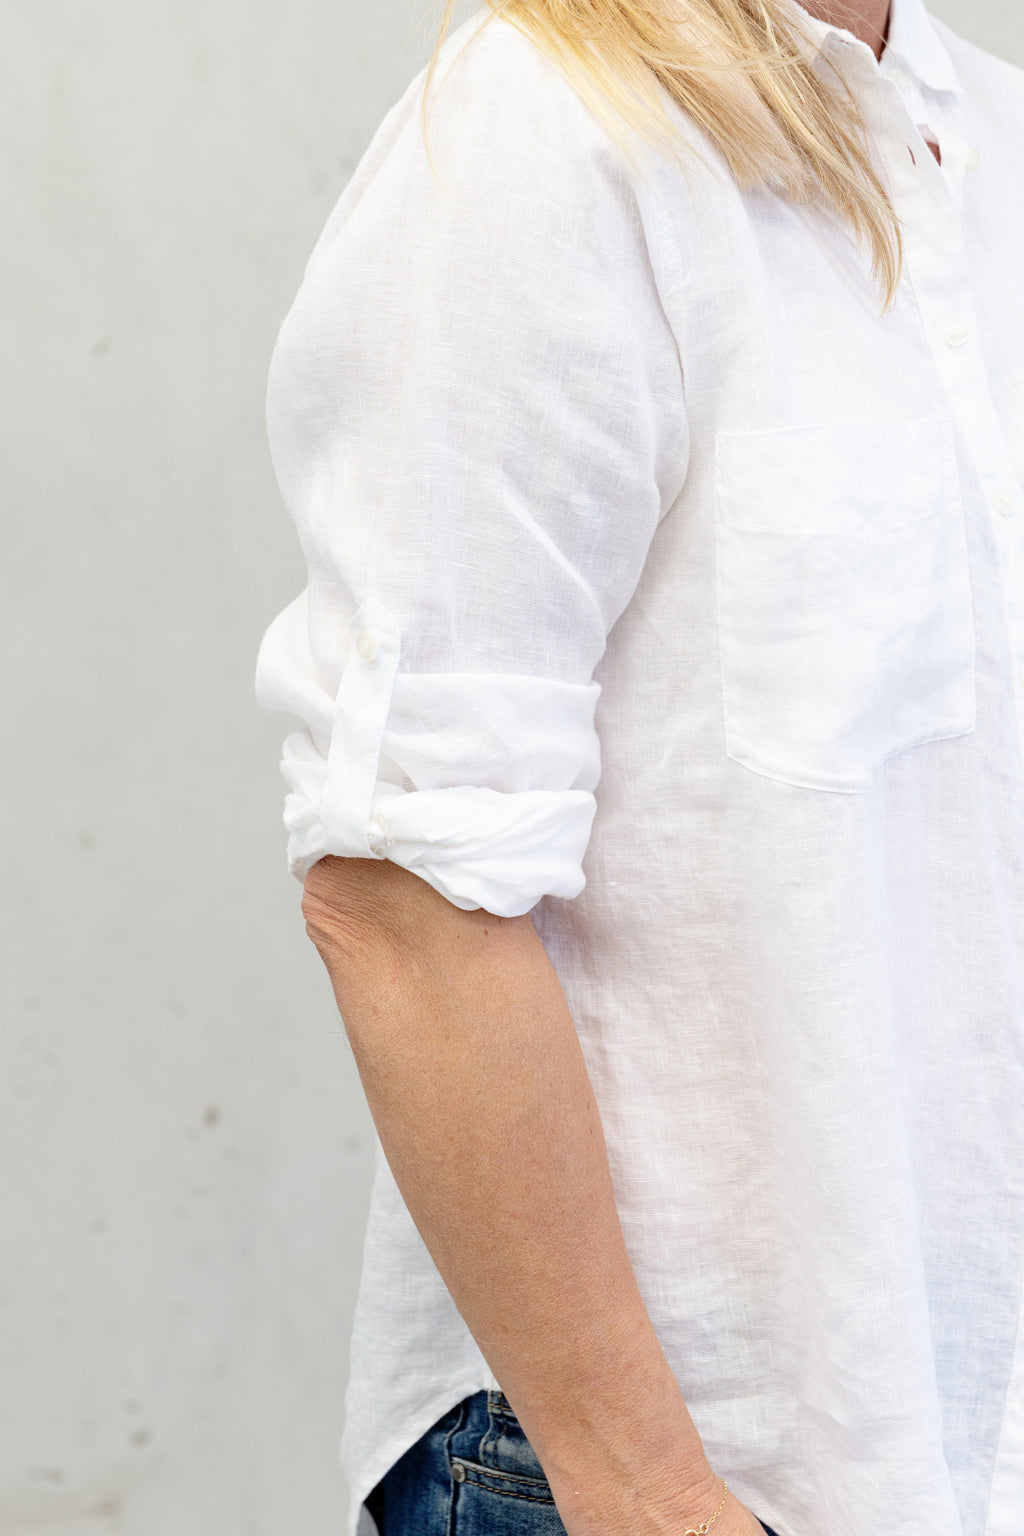 Hut Clothing Linen Boyfriend Shirt White